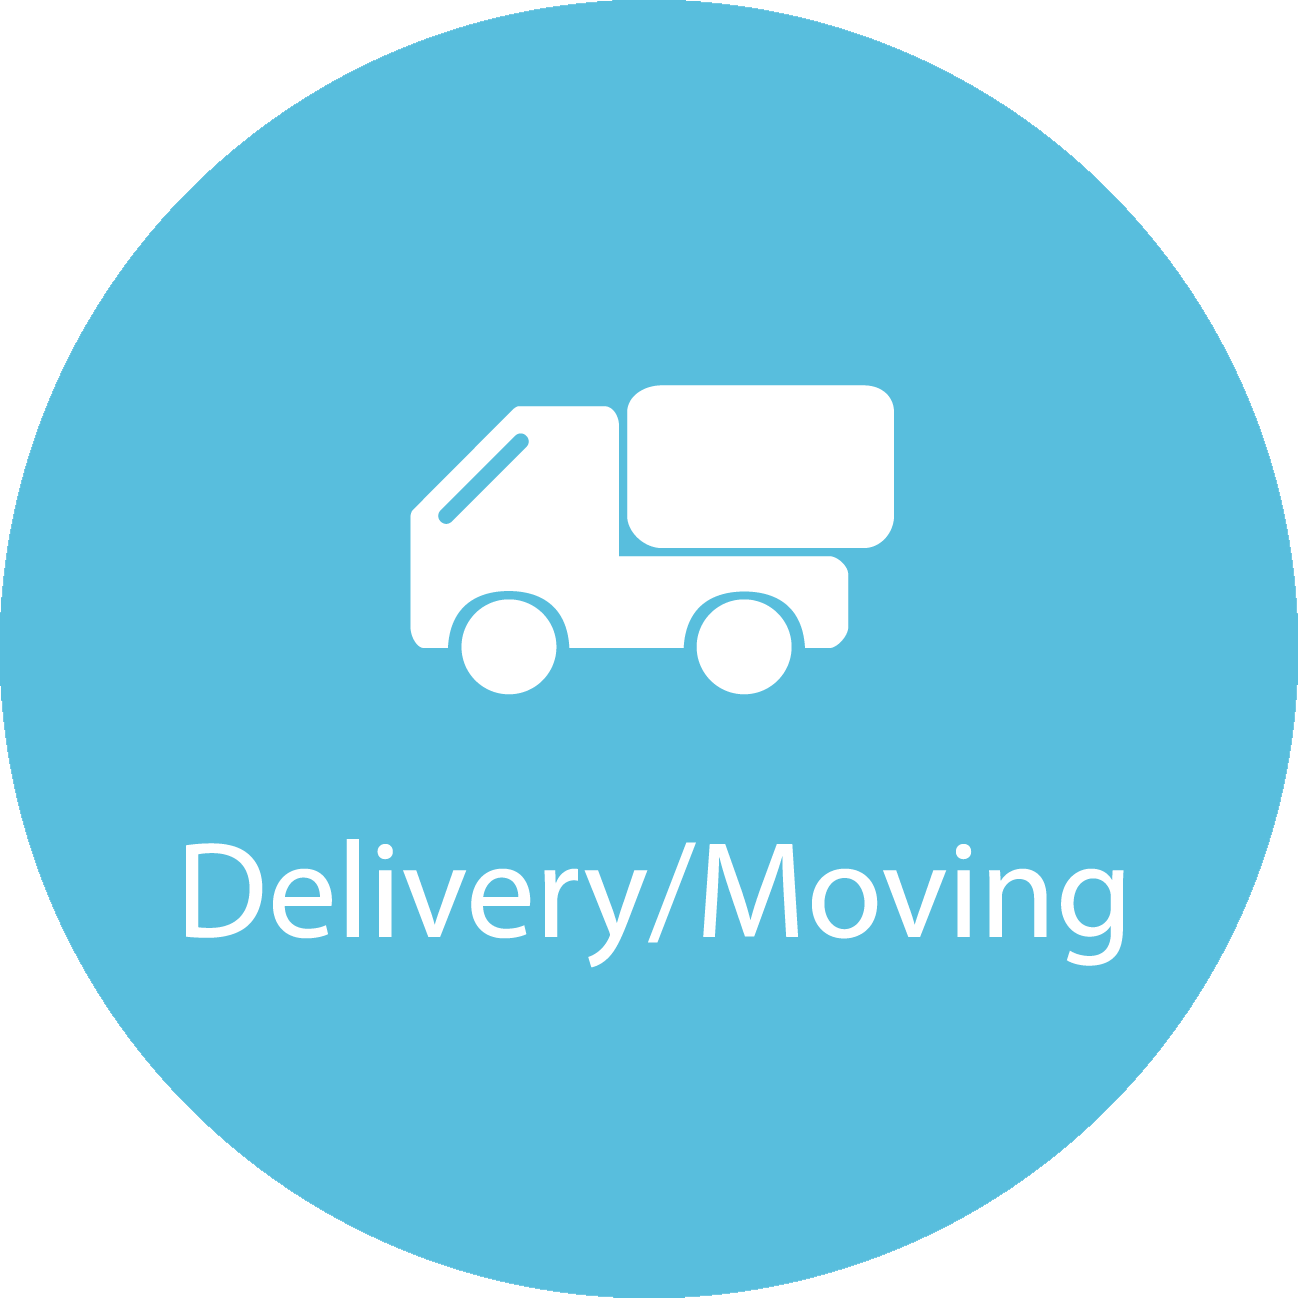 delivery moving